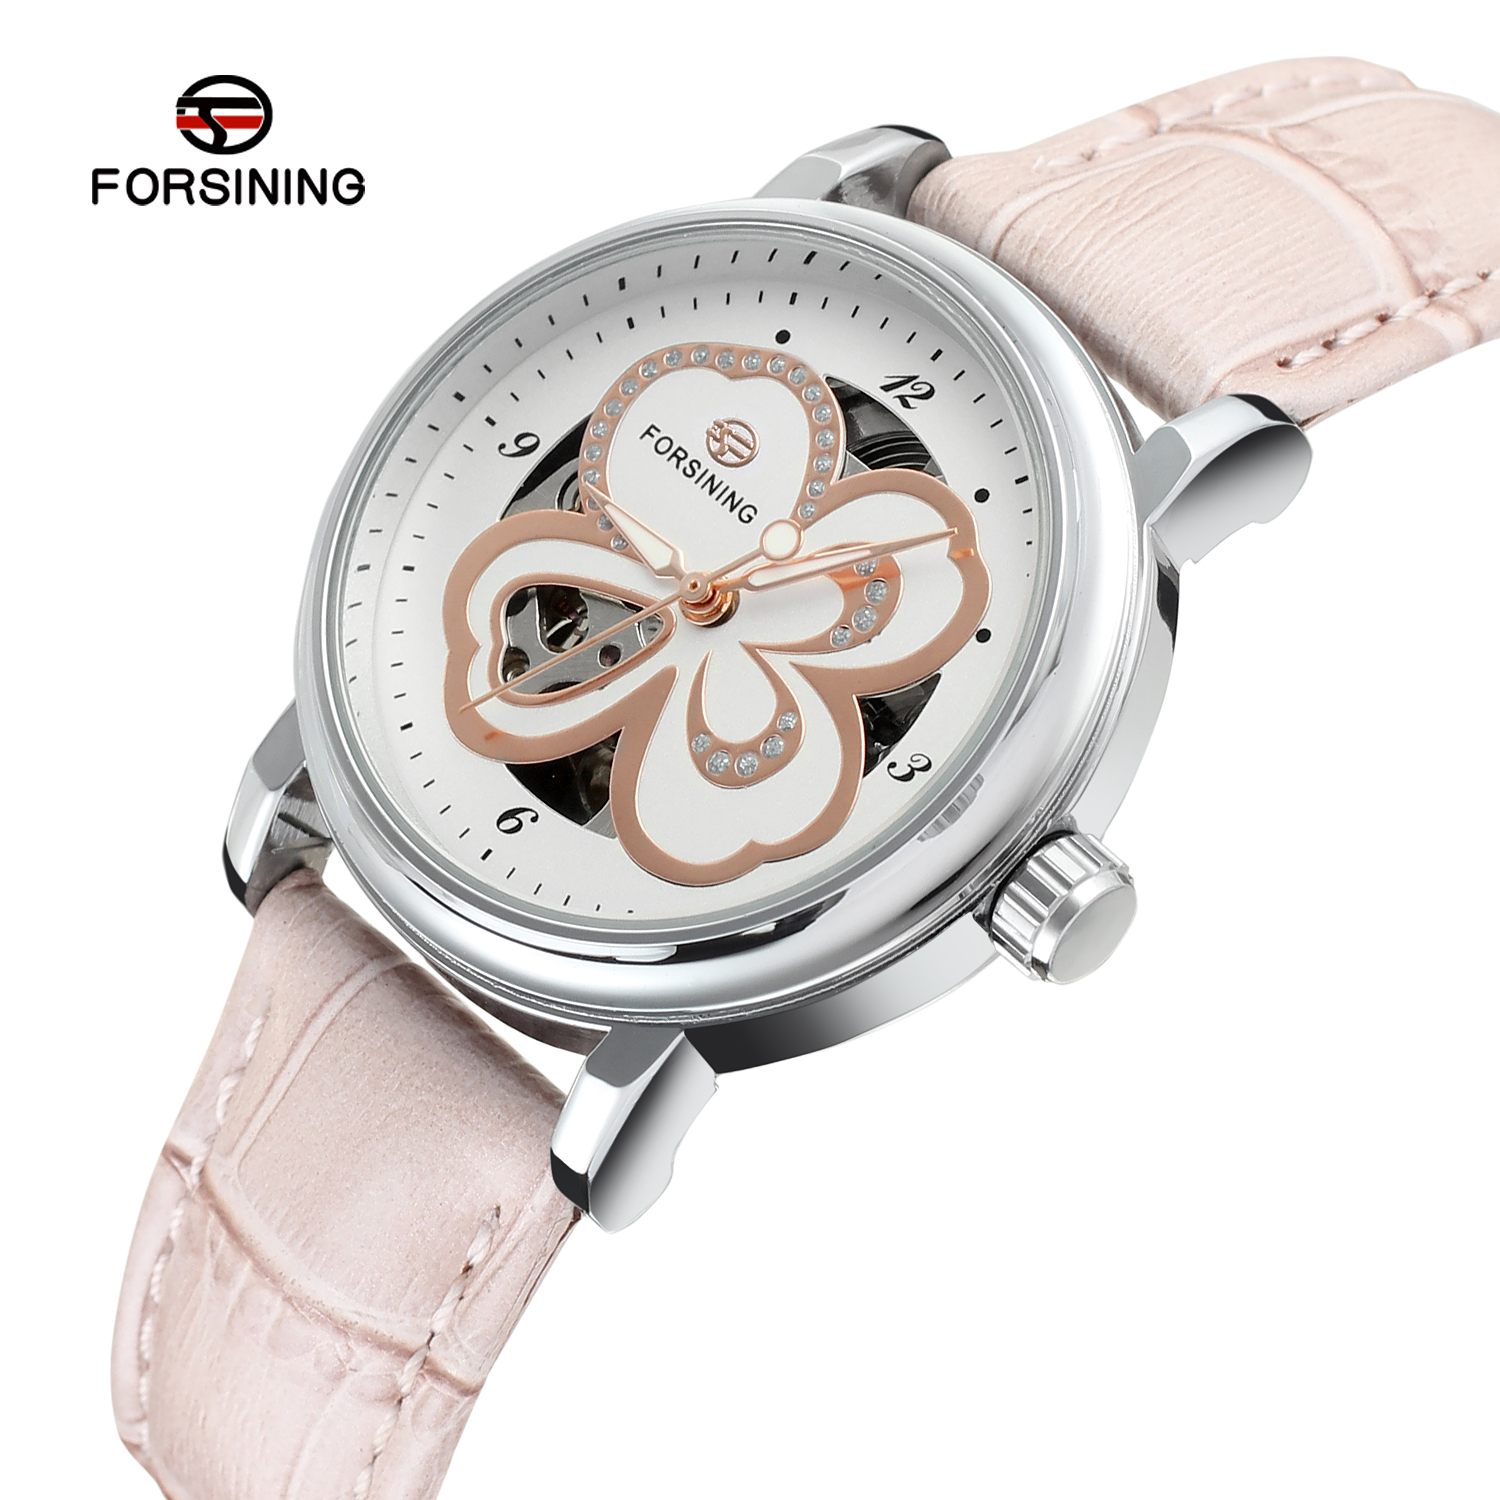 2019 Forsining Women Famous Top Brand Red Leather Automatic Ladies Mechanical Relogio Feminino Clockrelojes Clock Relojes Mujer2019 Forsining Women Famous Top Brand Red Leather Automatic Ladies Mechanical Relogio Feminino Clockrelojes Clock Relojes Mujer